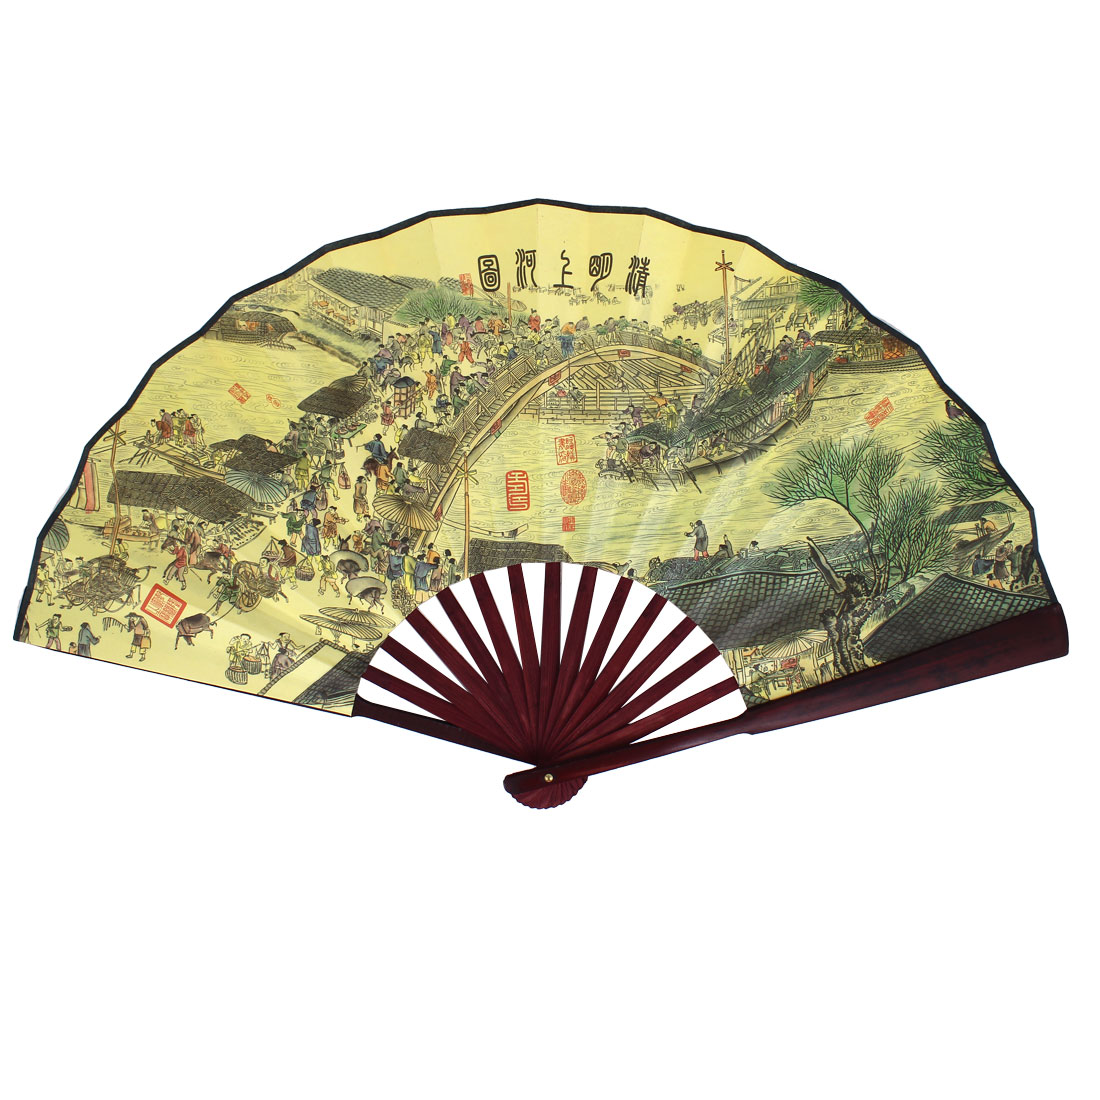 Bamboo Frame Riverside Scene at Qingming Festival Printed Folding Hand Fan Yellow